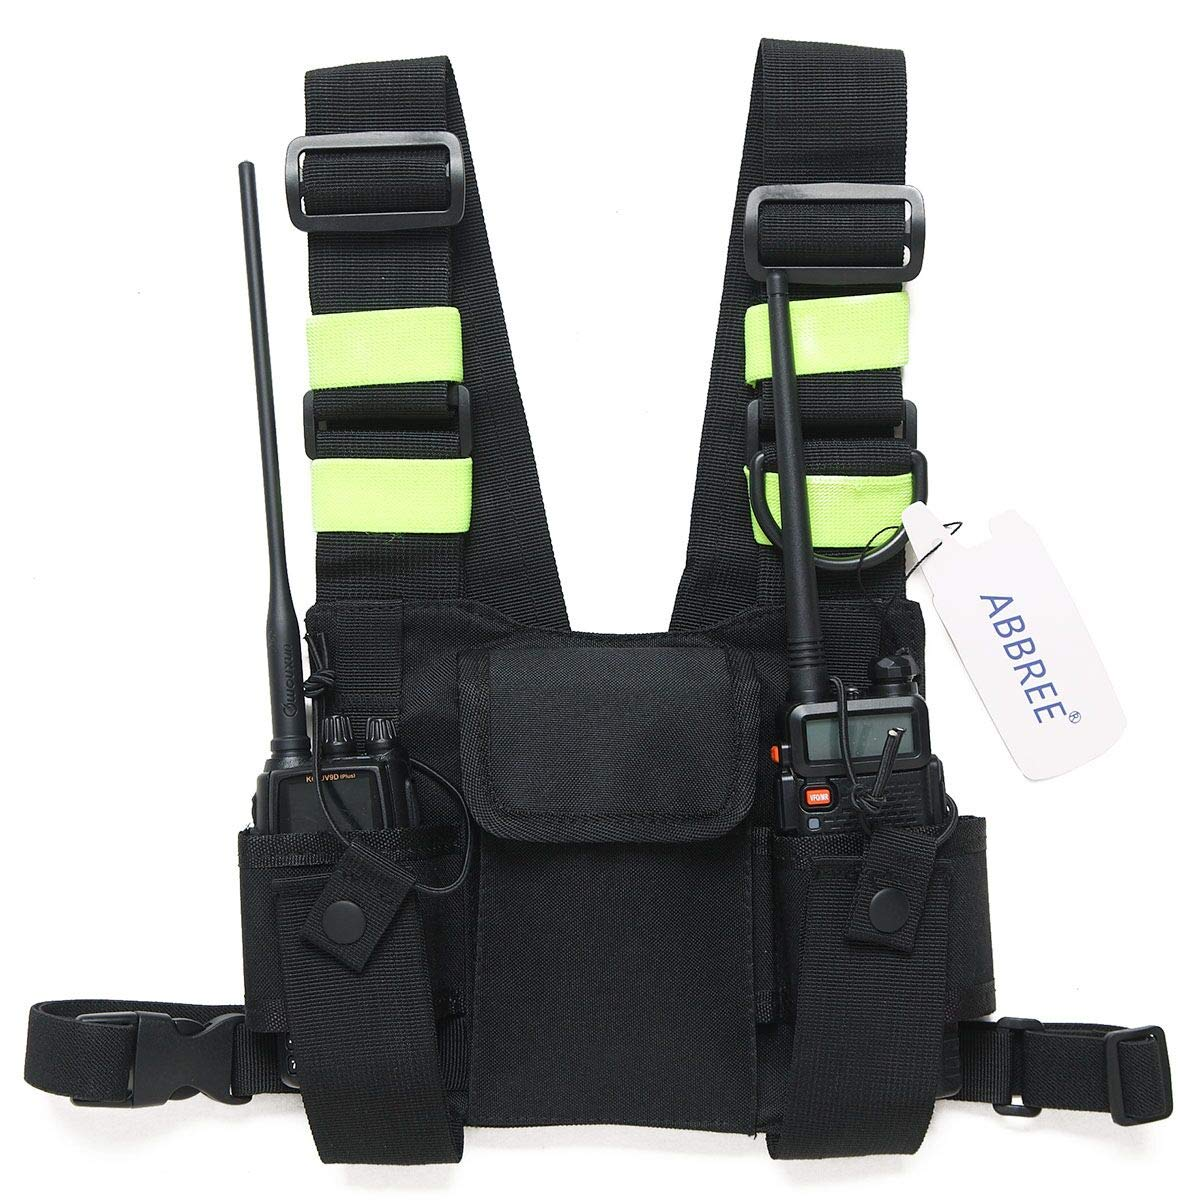 Abbree Front Pack Pouch Holster Vest Rig Chest Bag Carry Case for Baofeng Two Way Radio UV-5R BF-F8HP UV-82 TYT Motorola Midland (Bright Green)